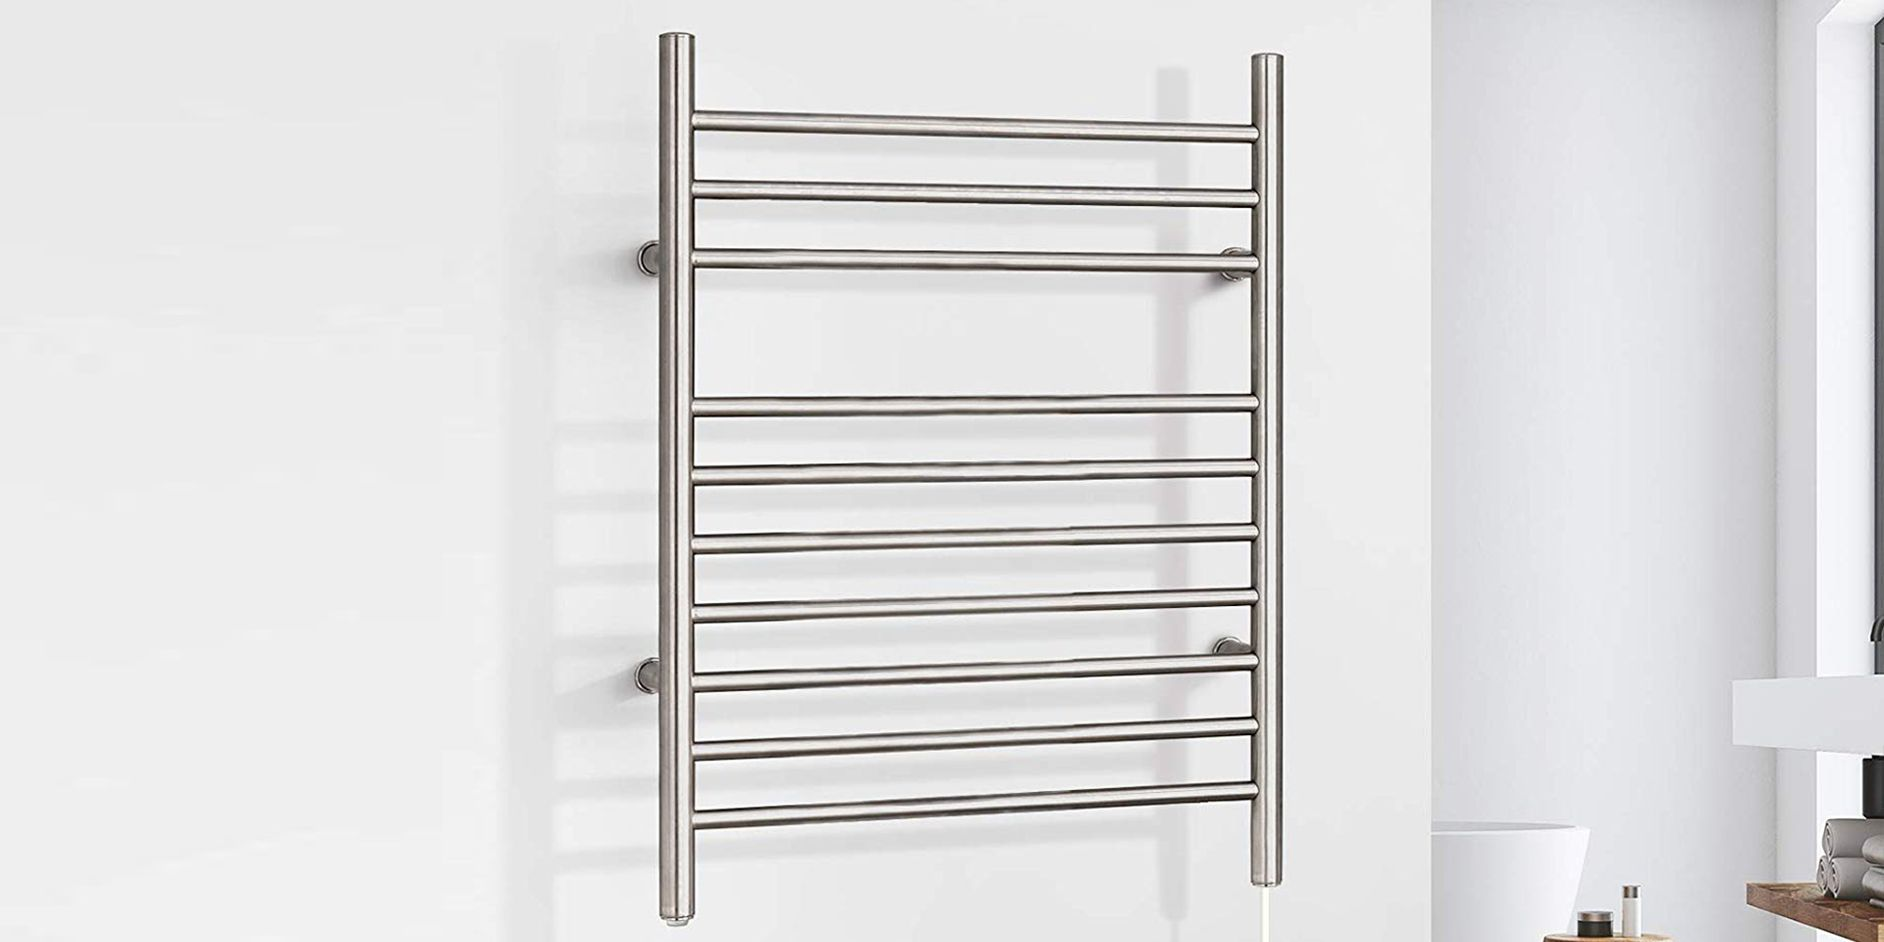 DELUXE TOWEL HOLDER FREE STANDING RAIL OVER DOOR BATHROOM STORAGE RACK ORGANIZER